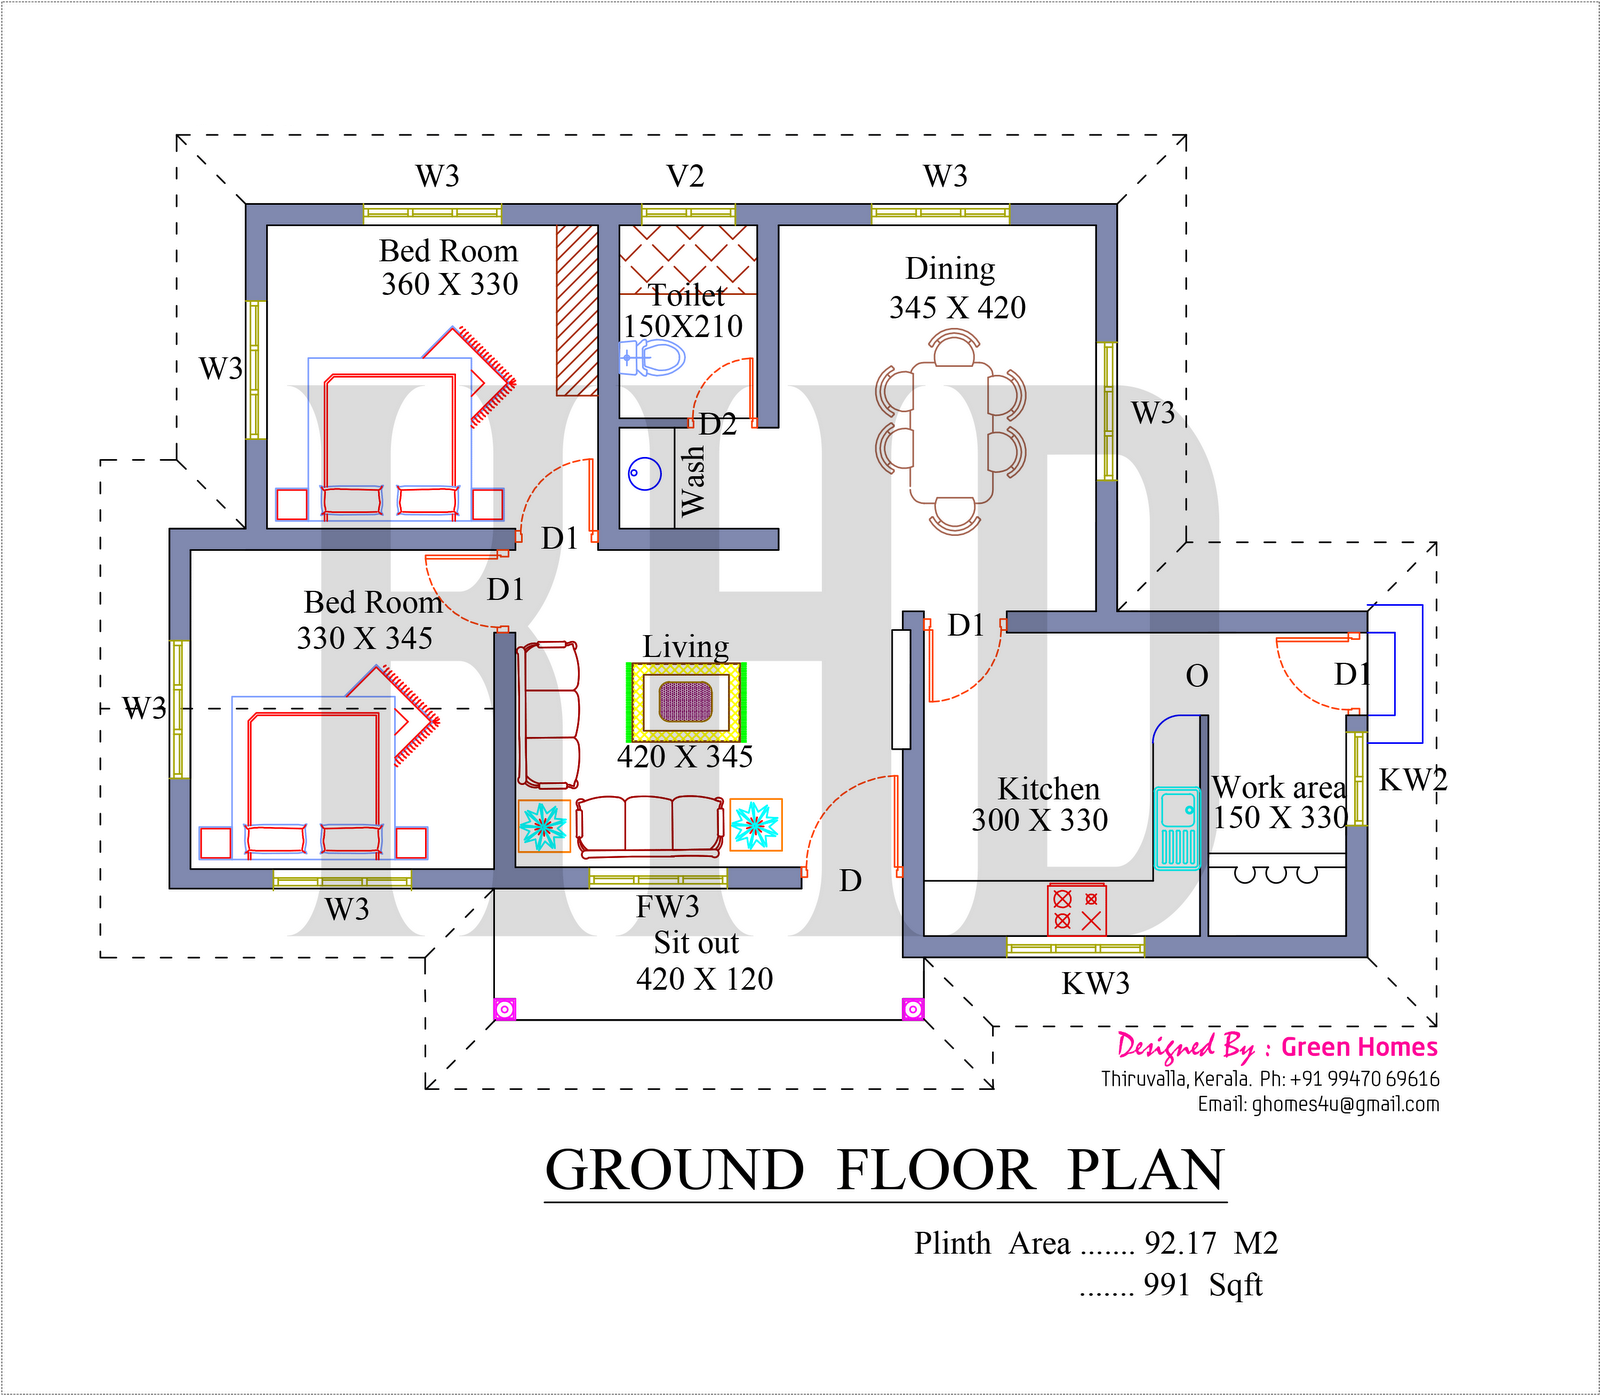 Bath Floor Plans Moreover Luxury Horse Barns With Living Quarters Floor Plan Design Budget House Plans House Floor Plans